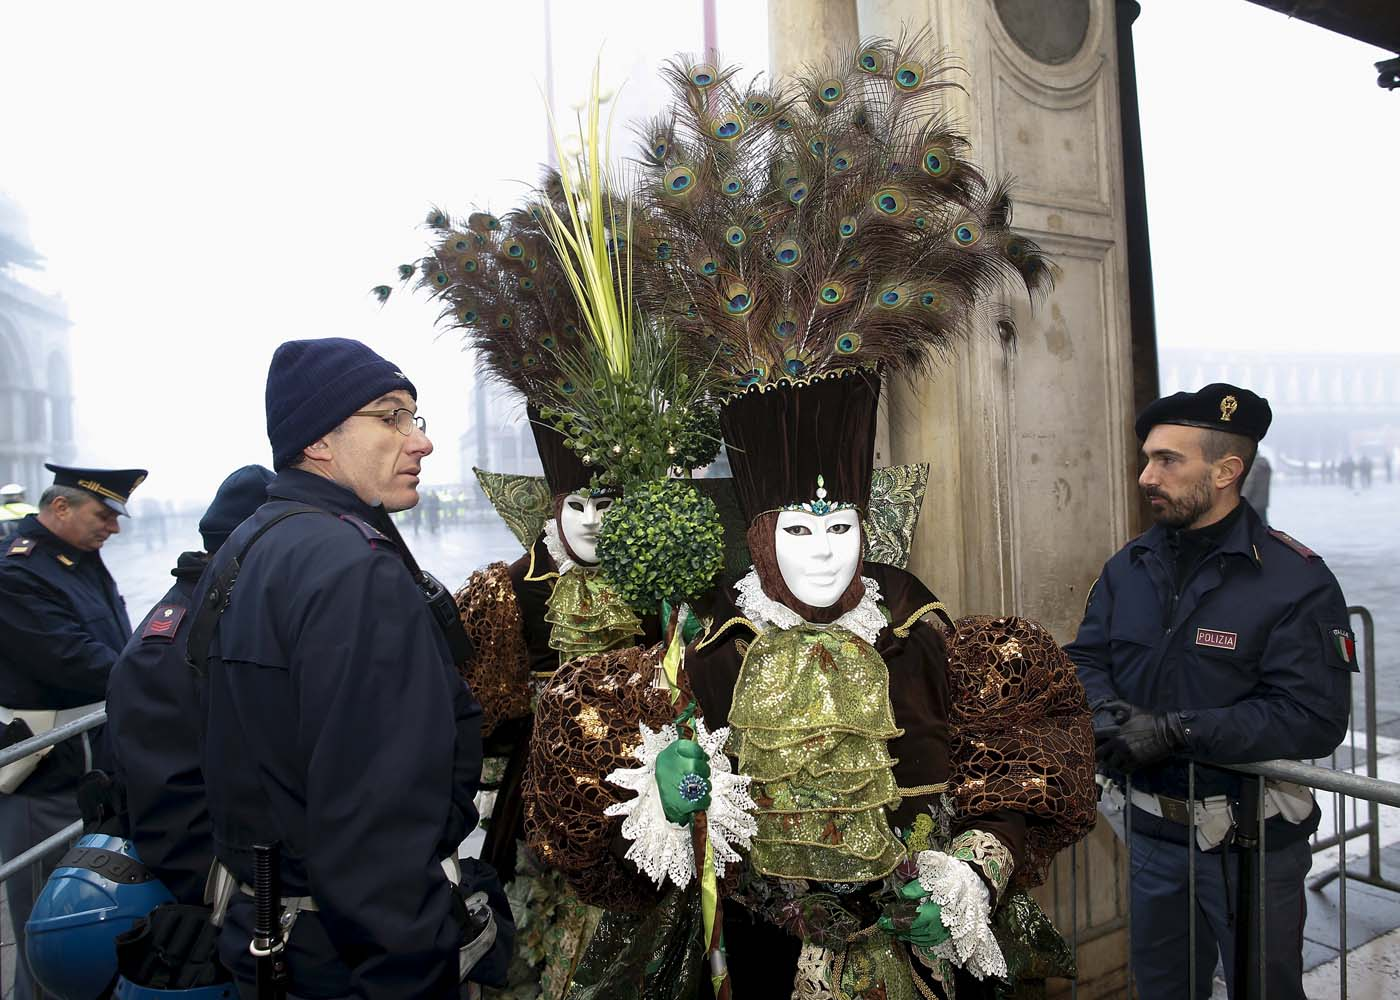 Italian policemen check masked revellers as they arrive at San Marco Piazza during the Venice Carnival, January 31, 2016. REUTERS/Alessandro Bianchi